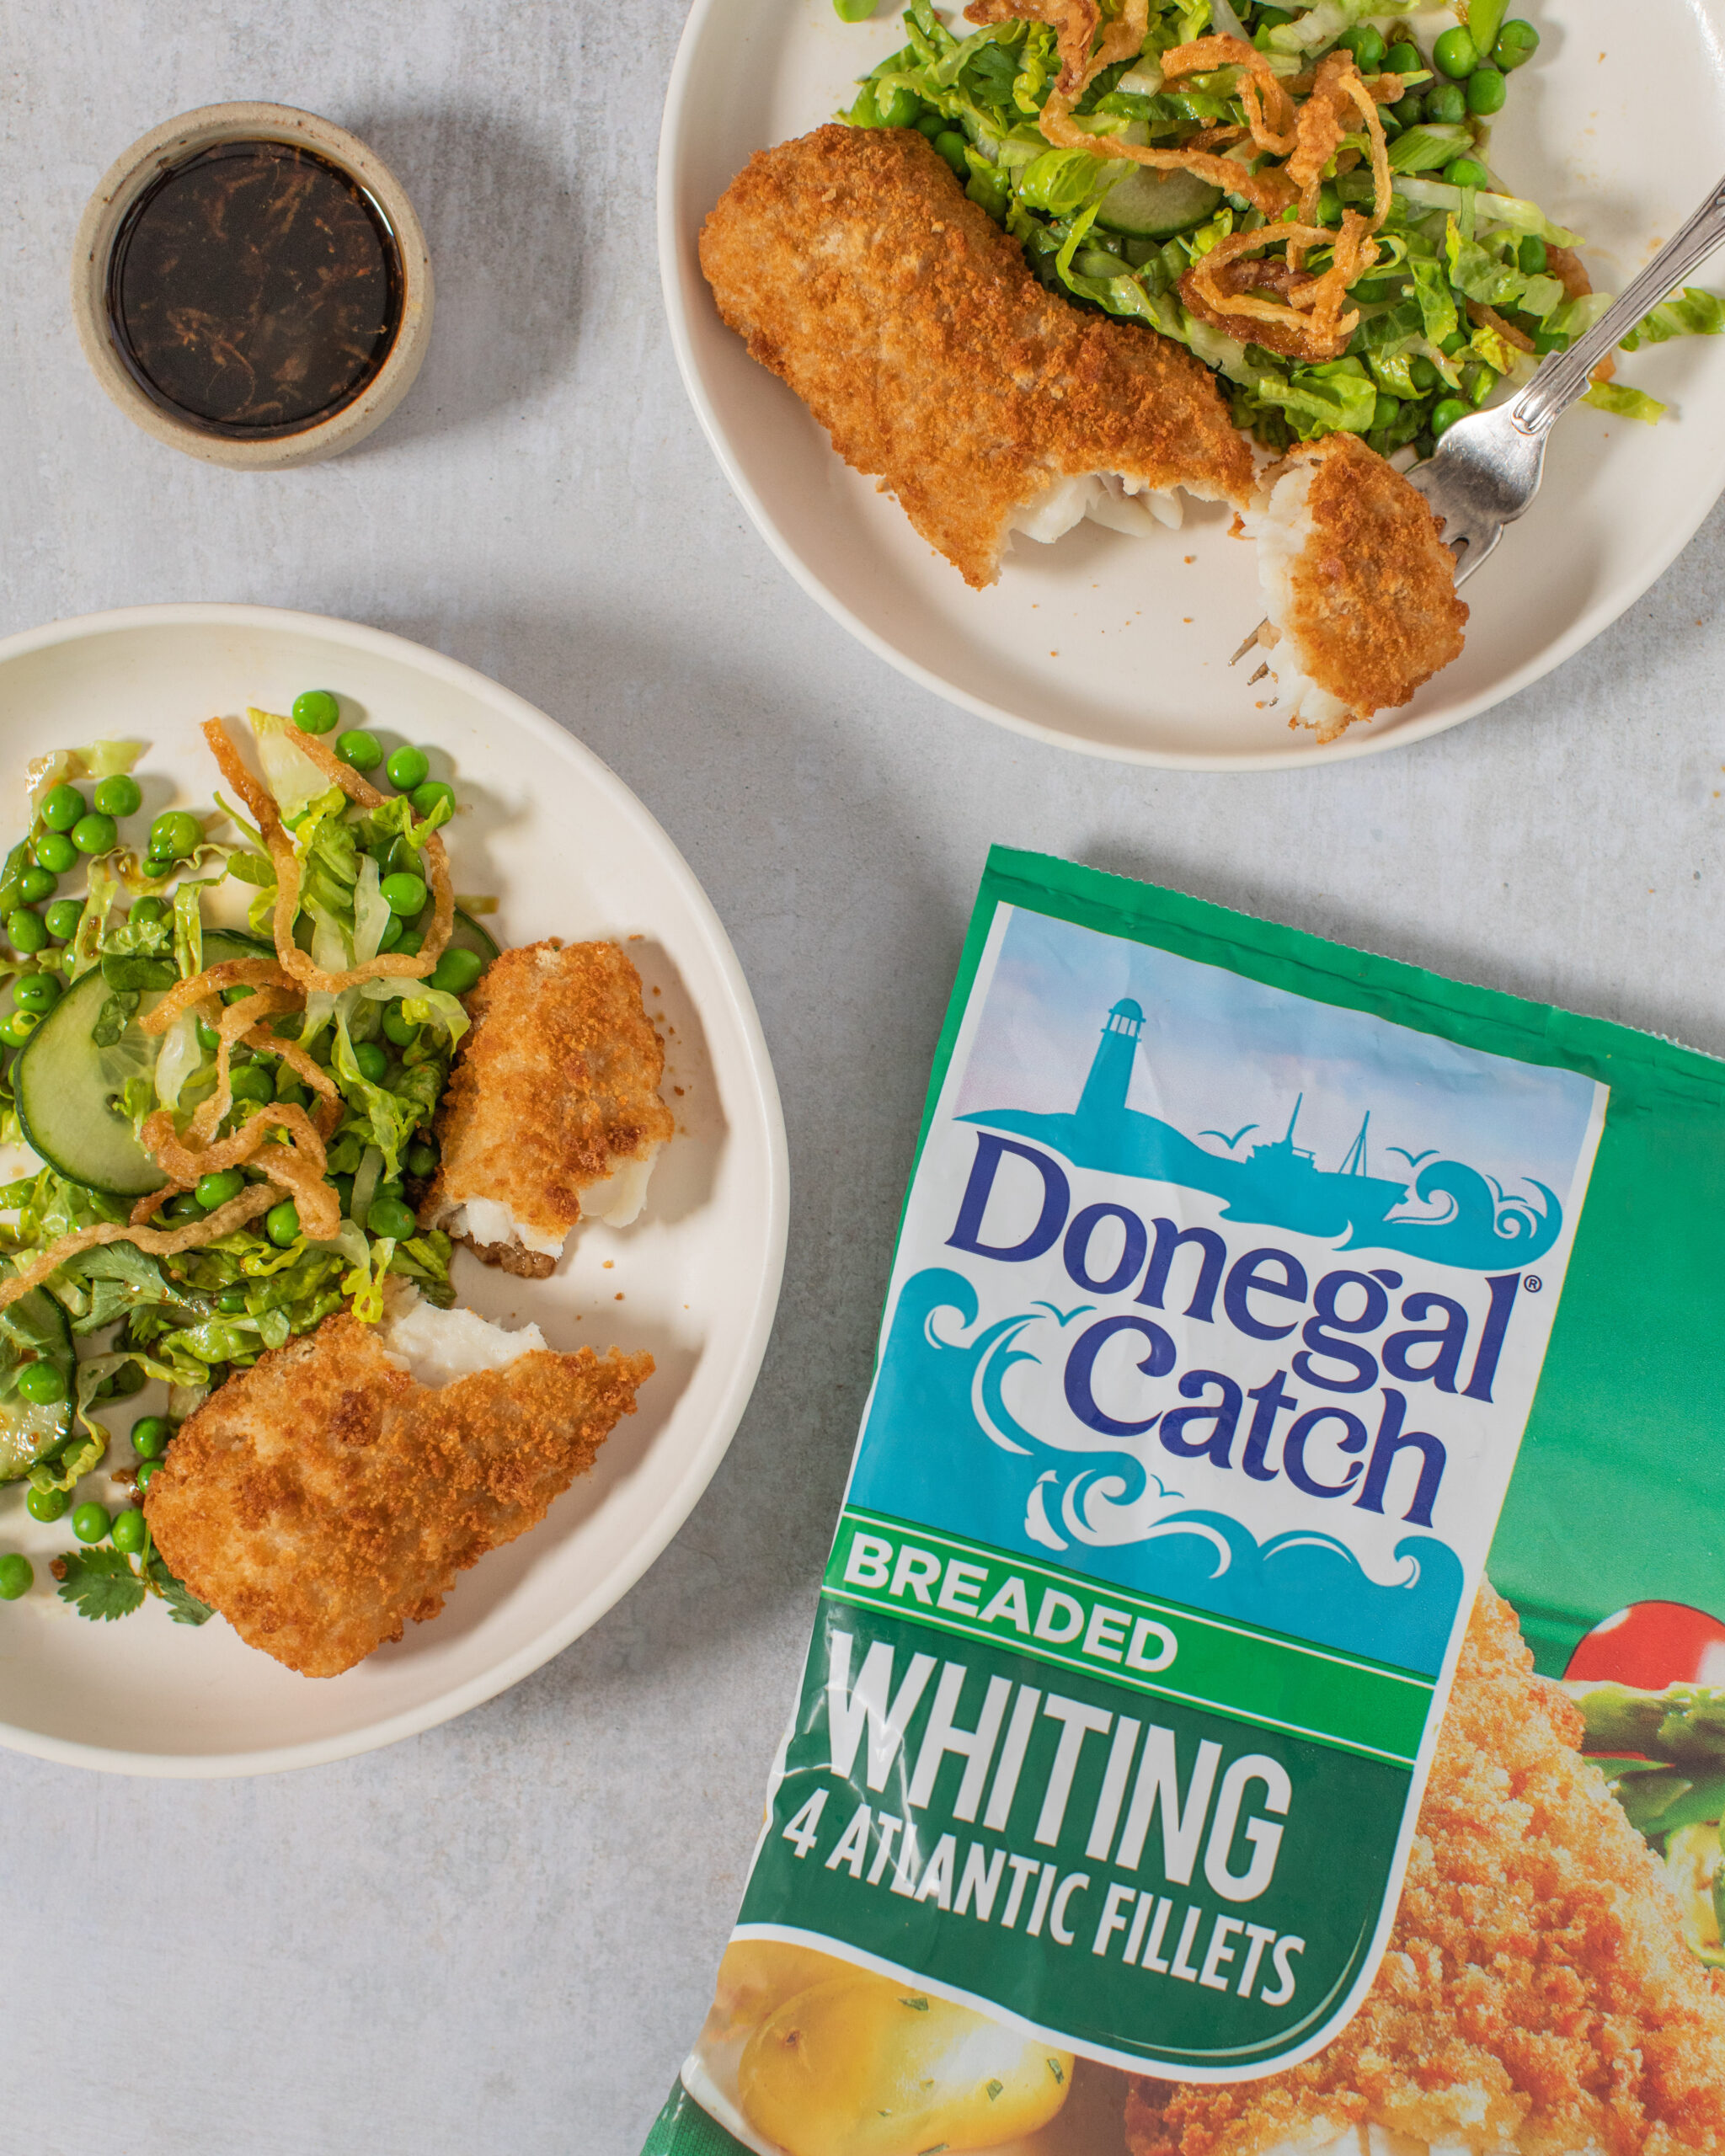 Asian crispy vegetable Salad with Donegal Catch Breaded Whiting